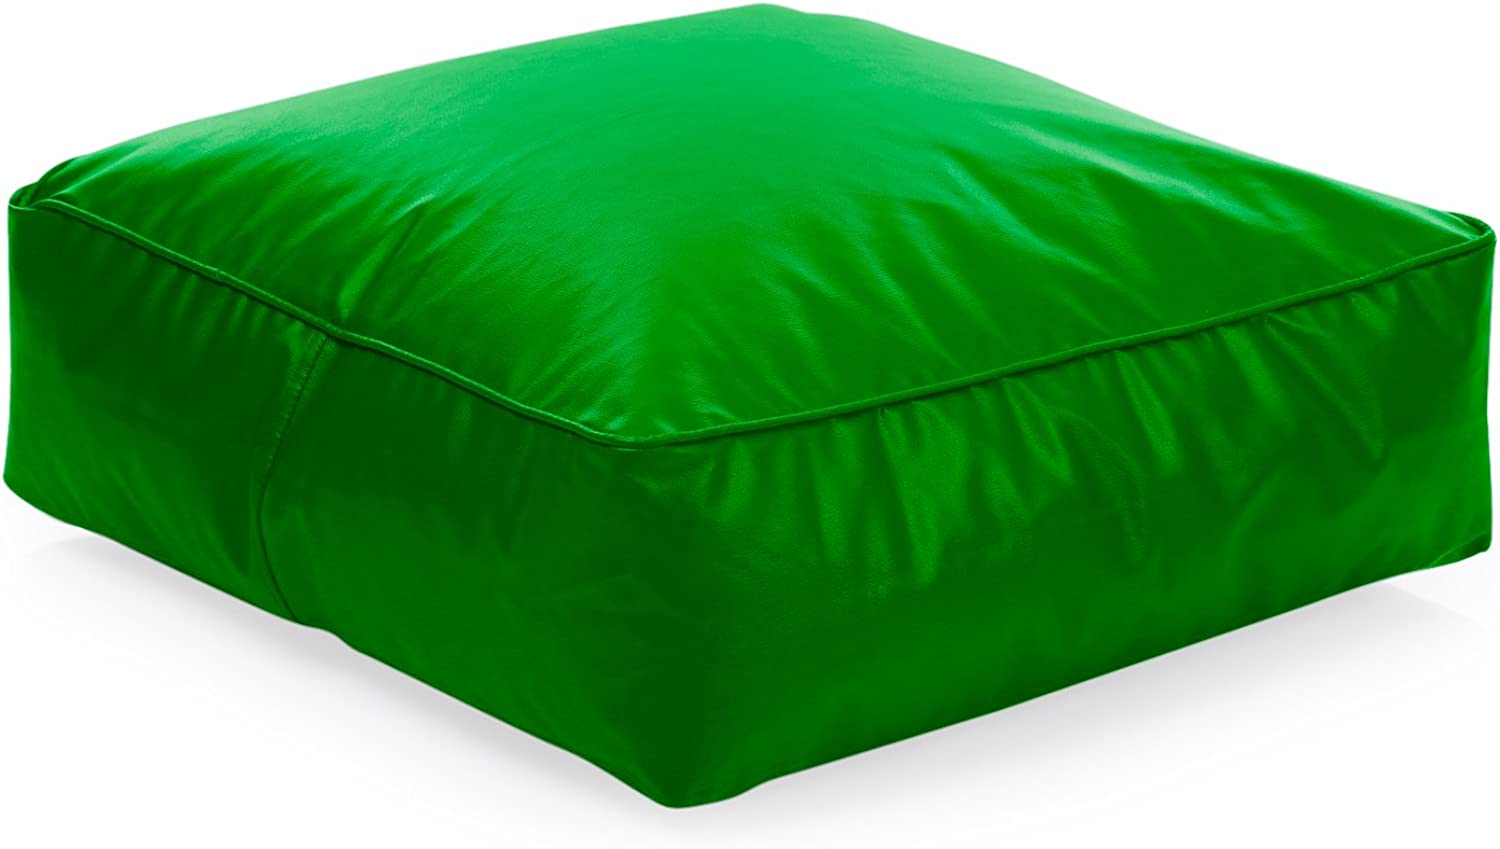 Style Homez Classic Square Floor Cushion L size Green color Cover Only